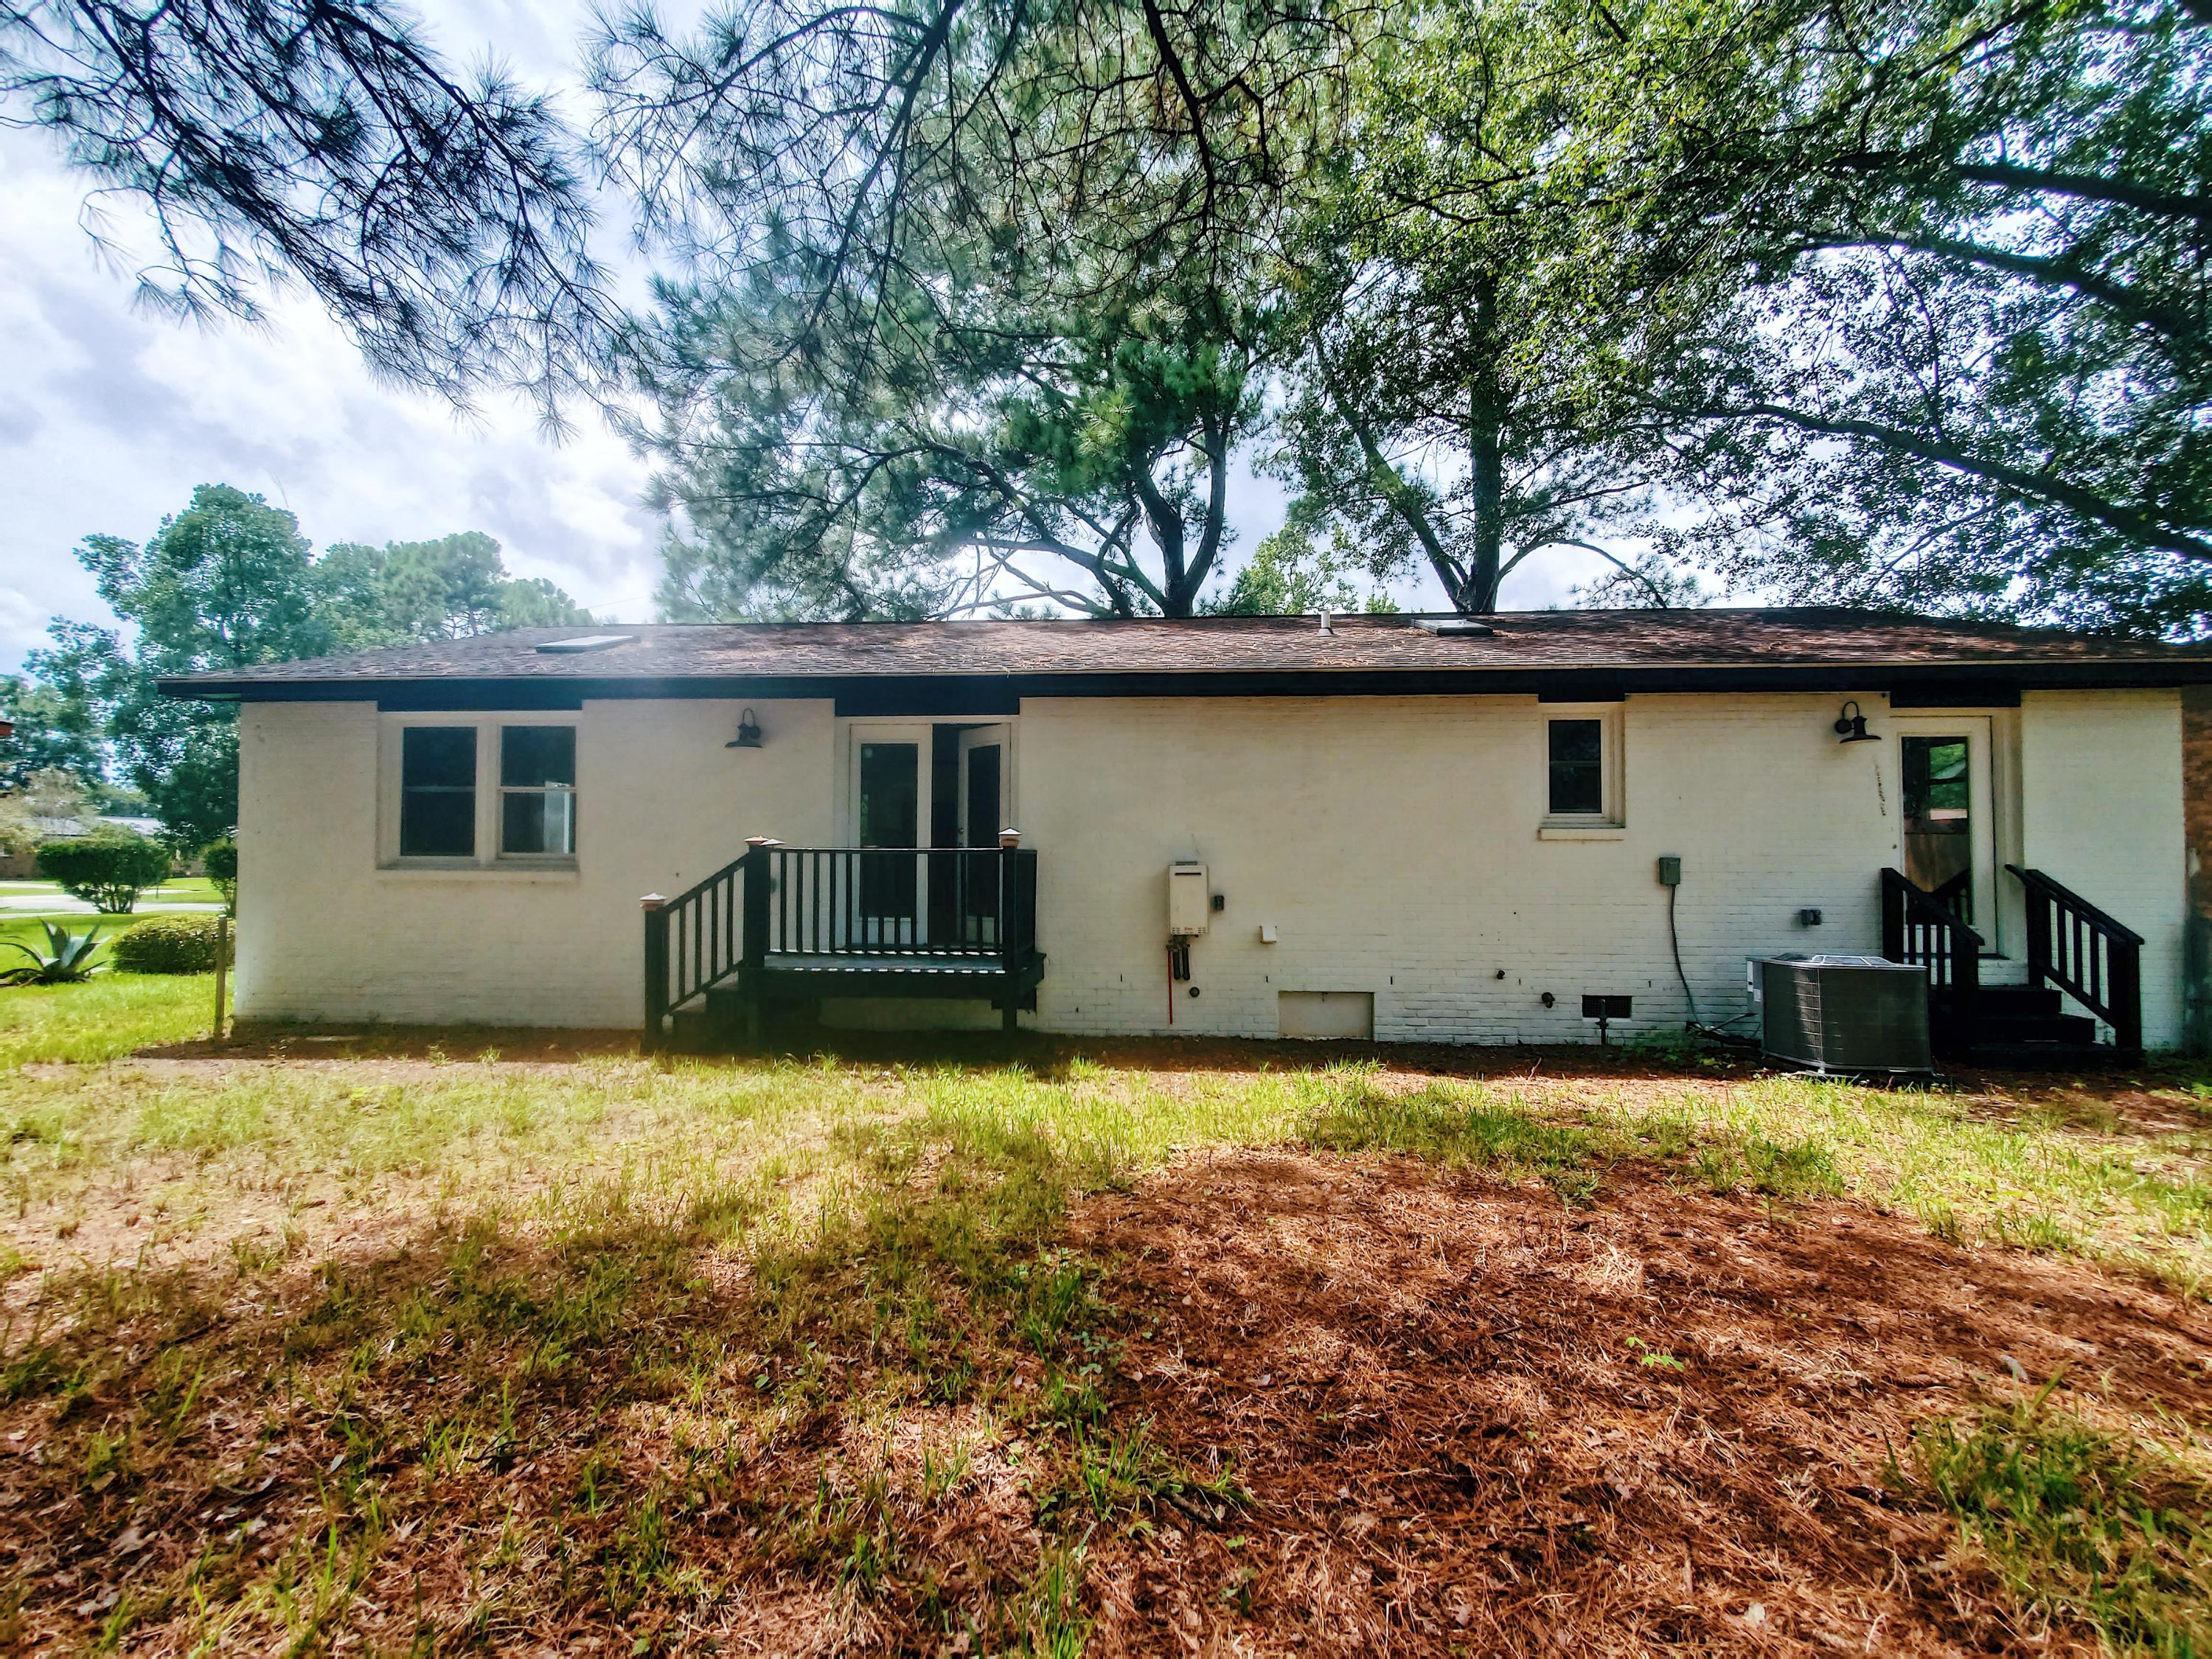 Glyn Terrace Homes For Sale - 5302 Mcroy, North Charleston, SC - 21